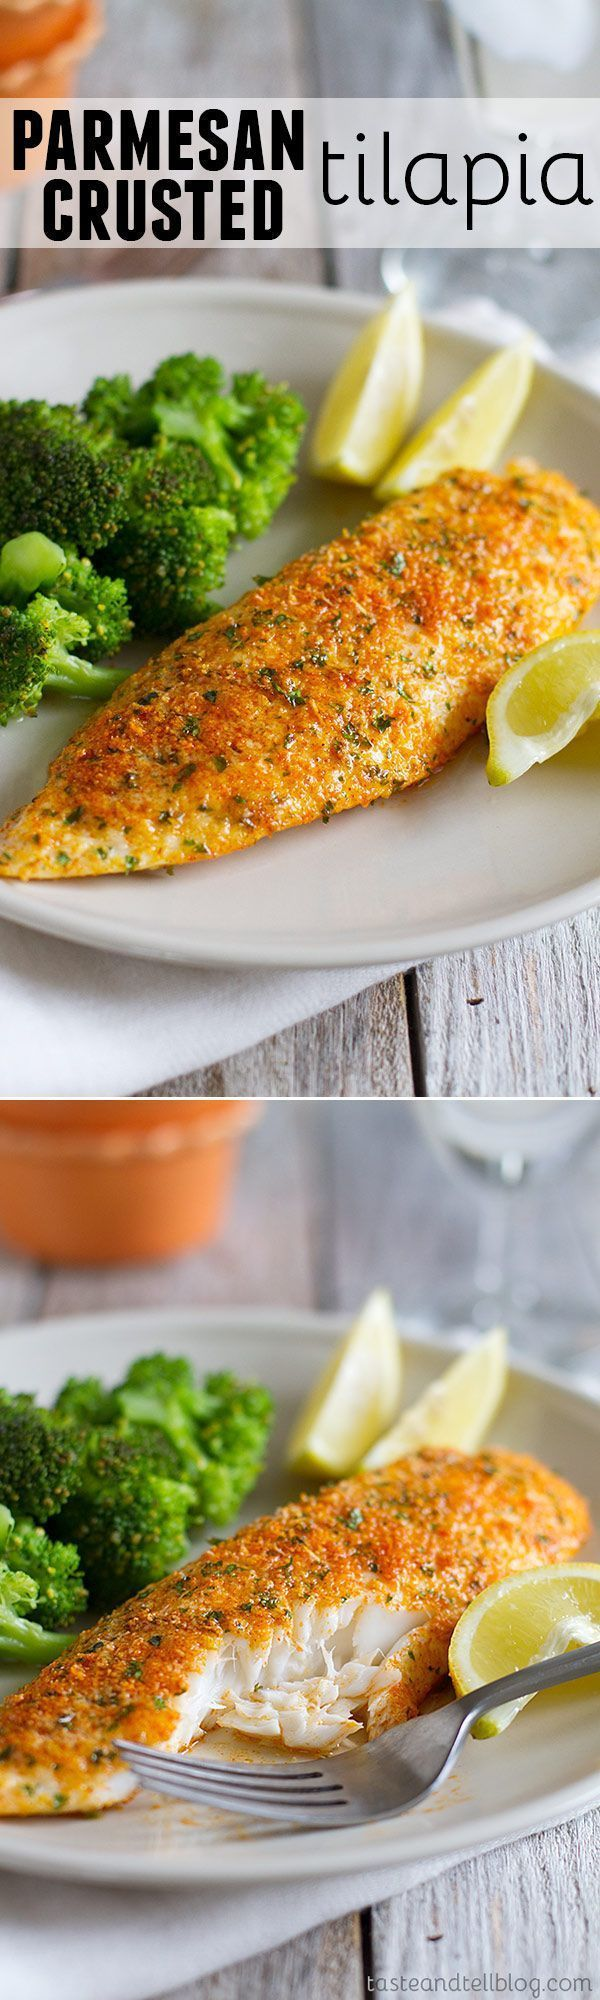 This Parmesan Crusted Tilapia is a simple fish recipe that is done in 20 minutes and will even impress non-fish lovers!: